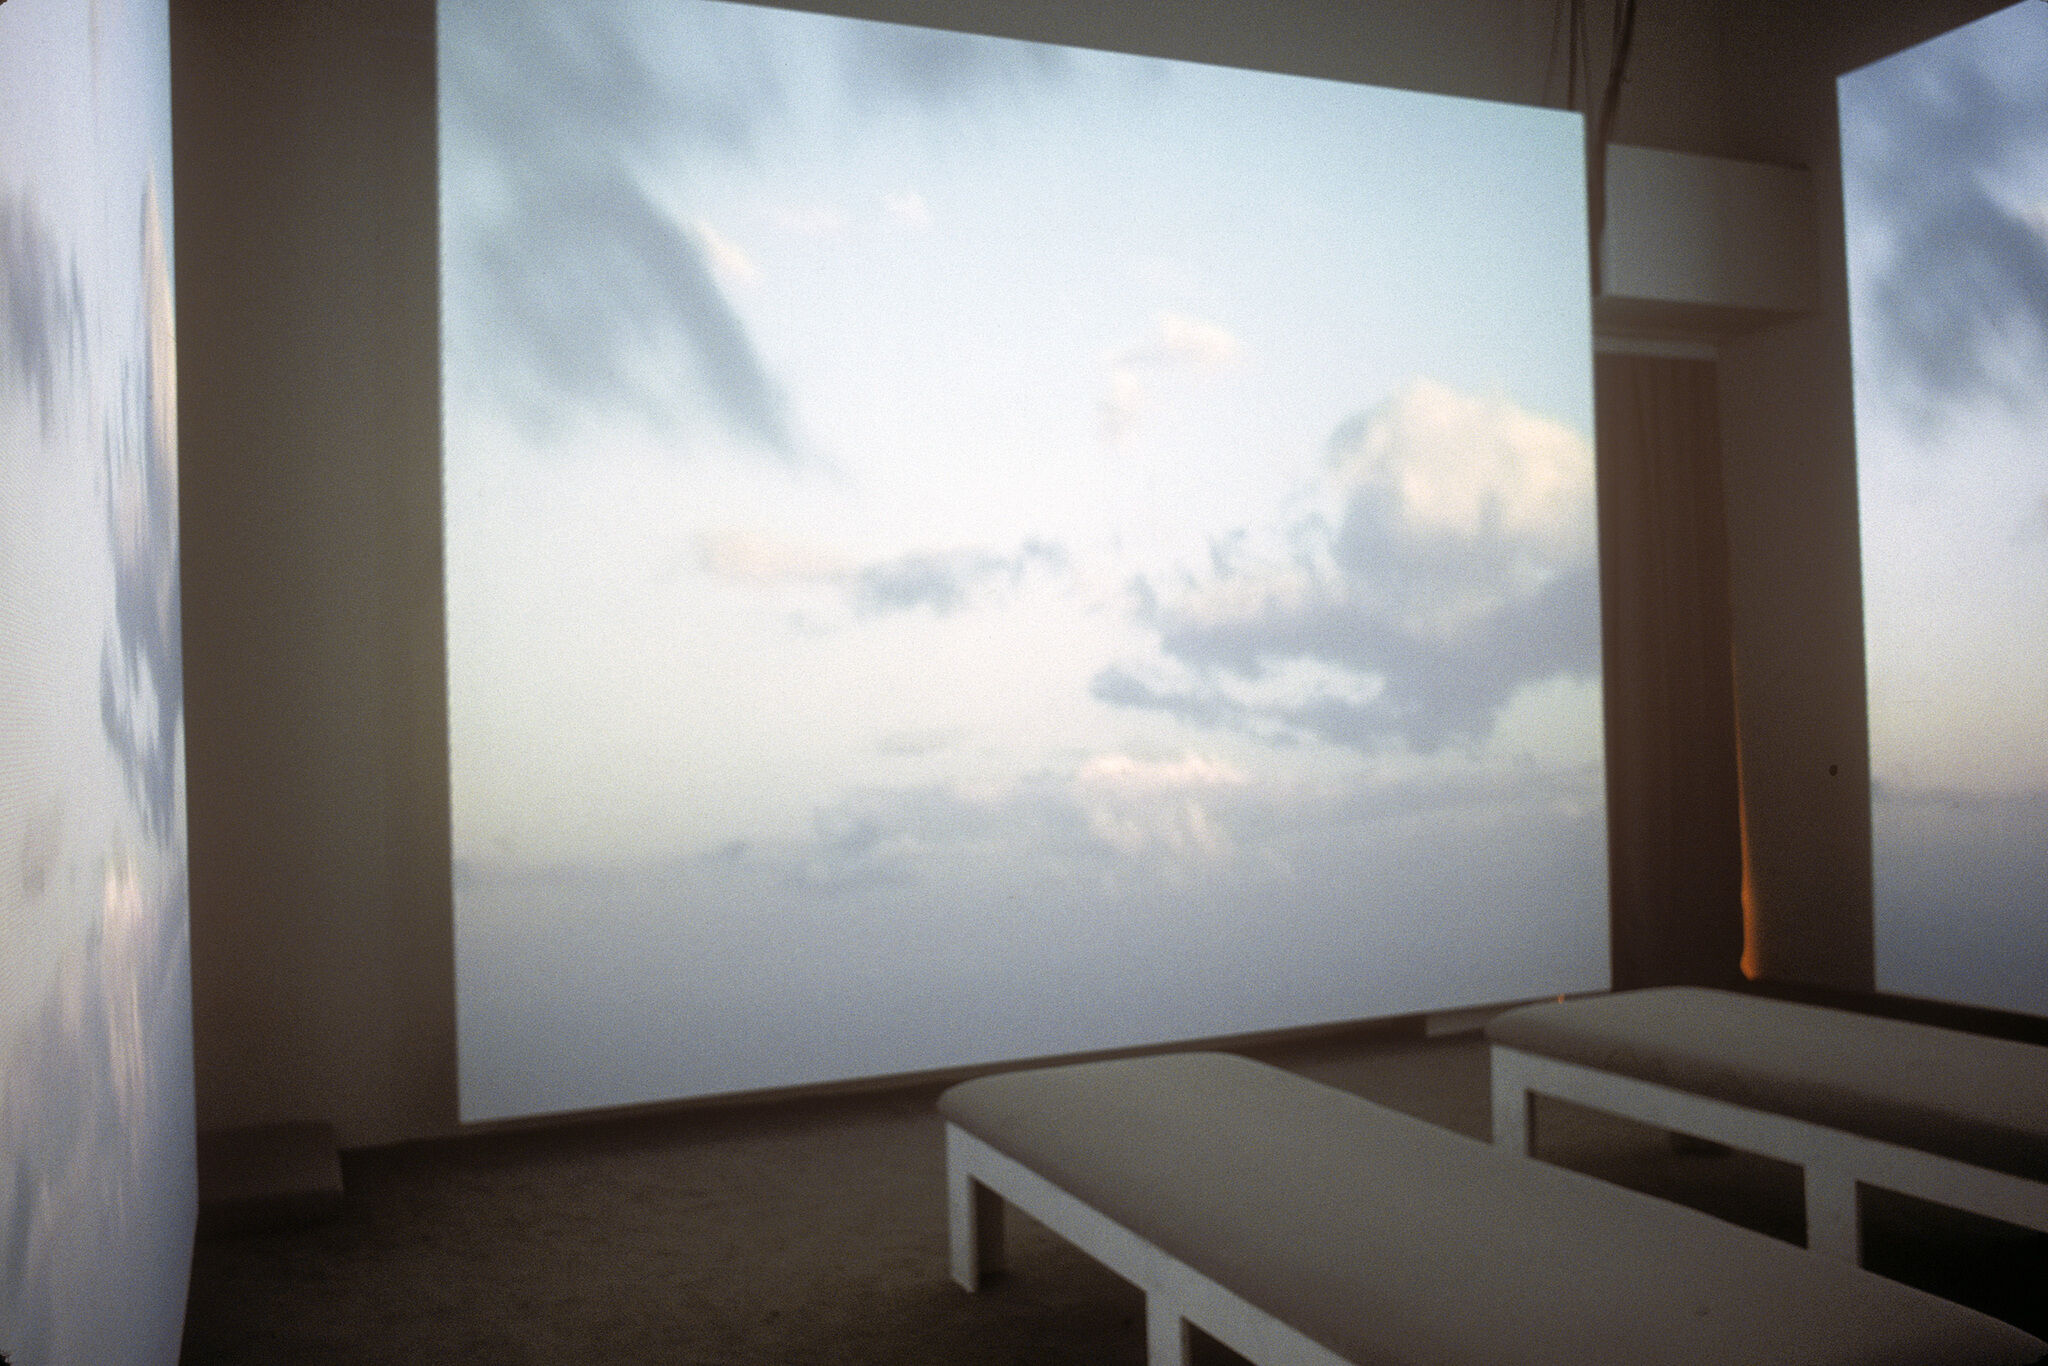 A gallery with walls covered in a projection of a sky with clouds.